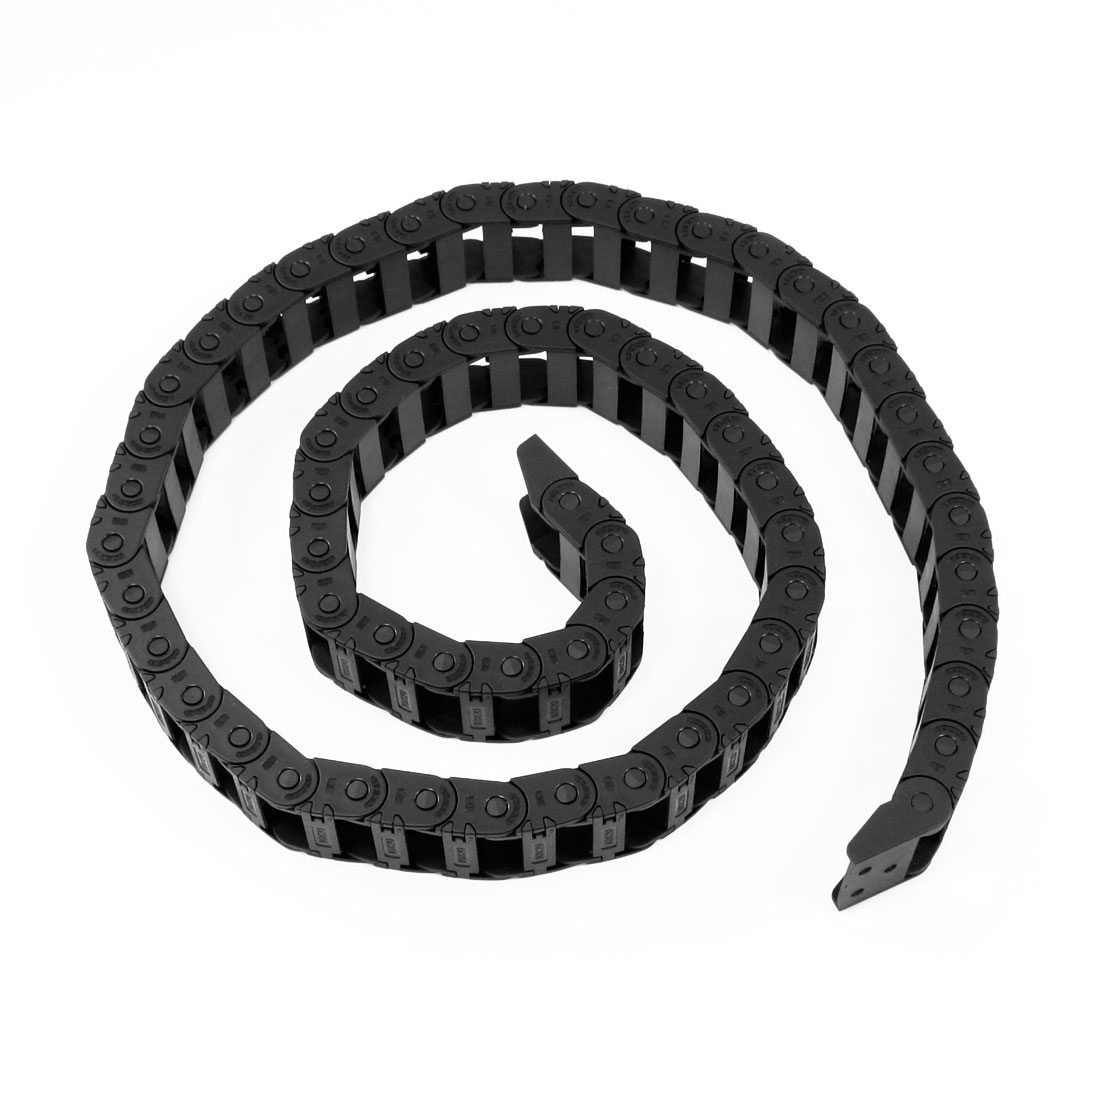 105cm Black Cable Wire Carrier Drag Chain Nested 10mm x 20mm